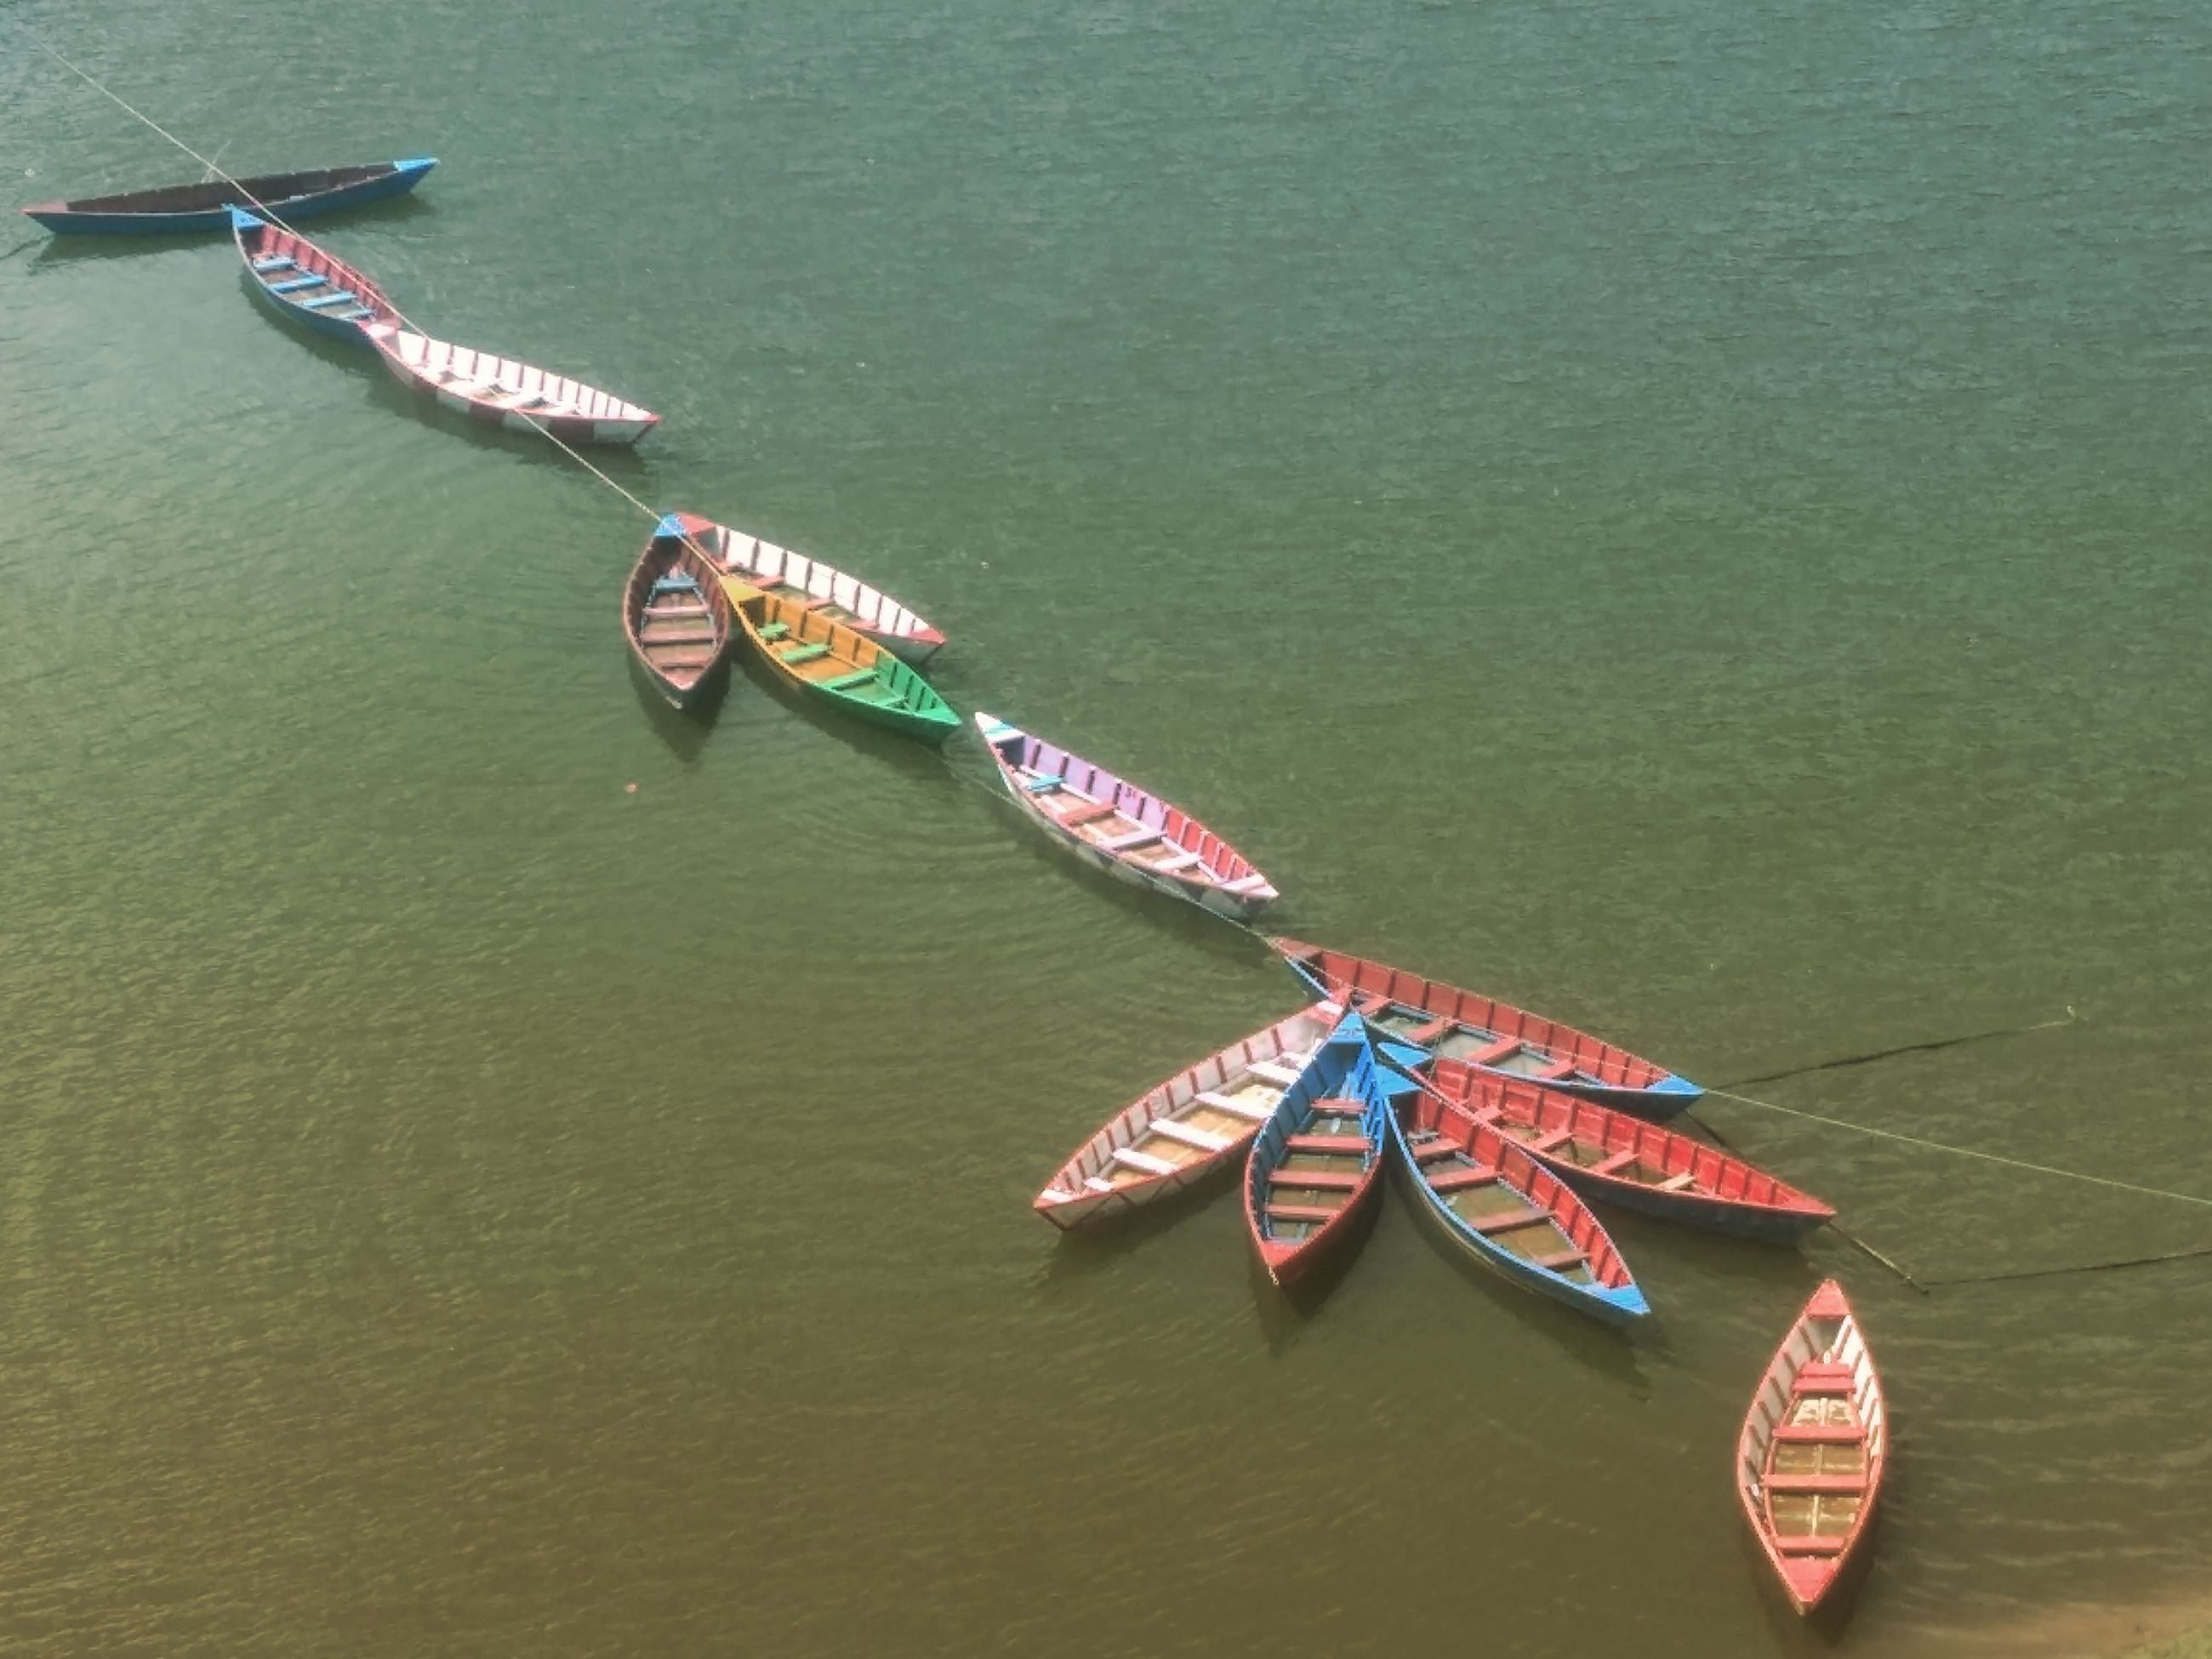 nautical vessel, transportation, mode of transport, high angle view, day, water, flag, outdoors, real people, nature, gondola - traditional boat